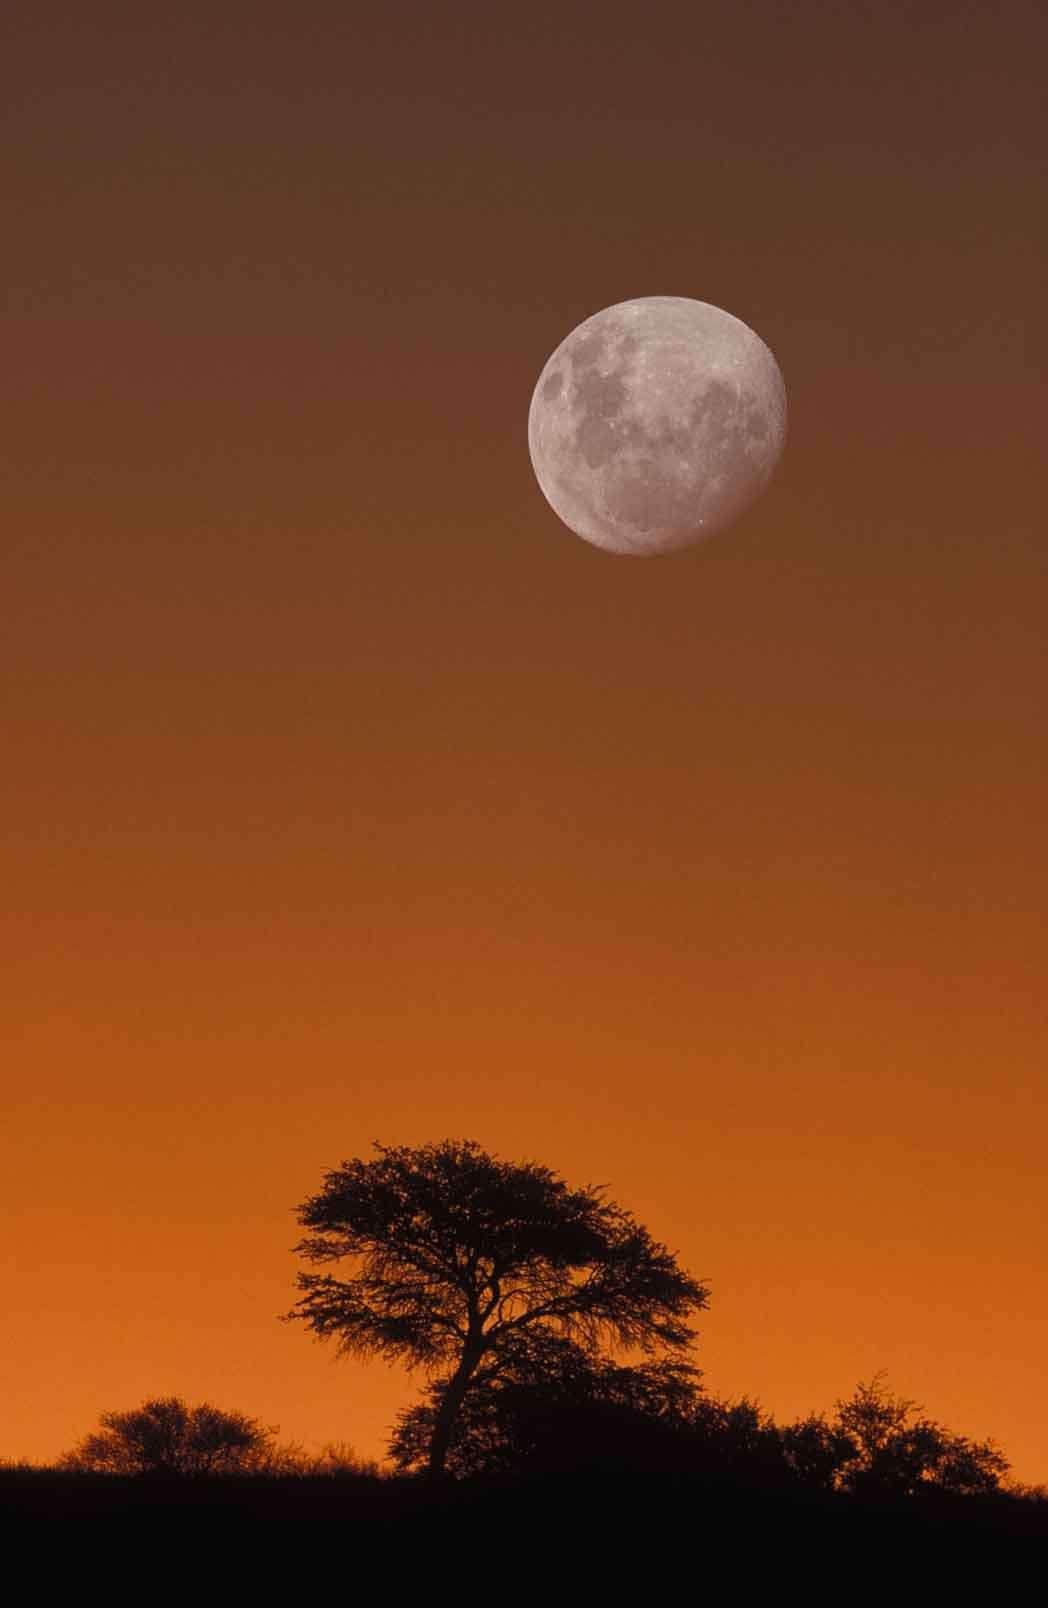 African sunset - is nothing more beautiful in life    For honeymoon or safari destinations in South Africa contact Chantelle - grt@gotravel.co.za     #travel #Africa #honeymoon